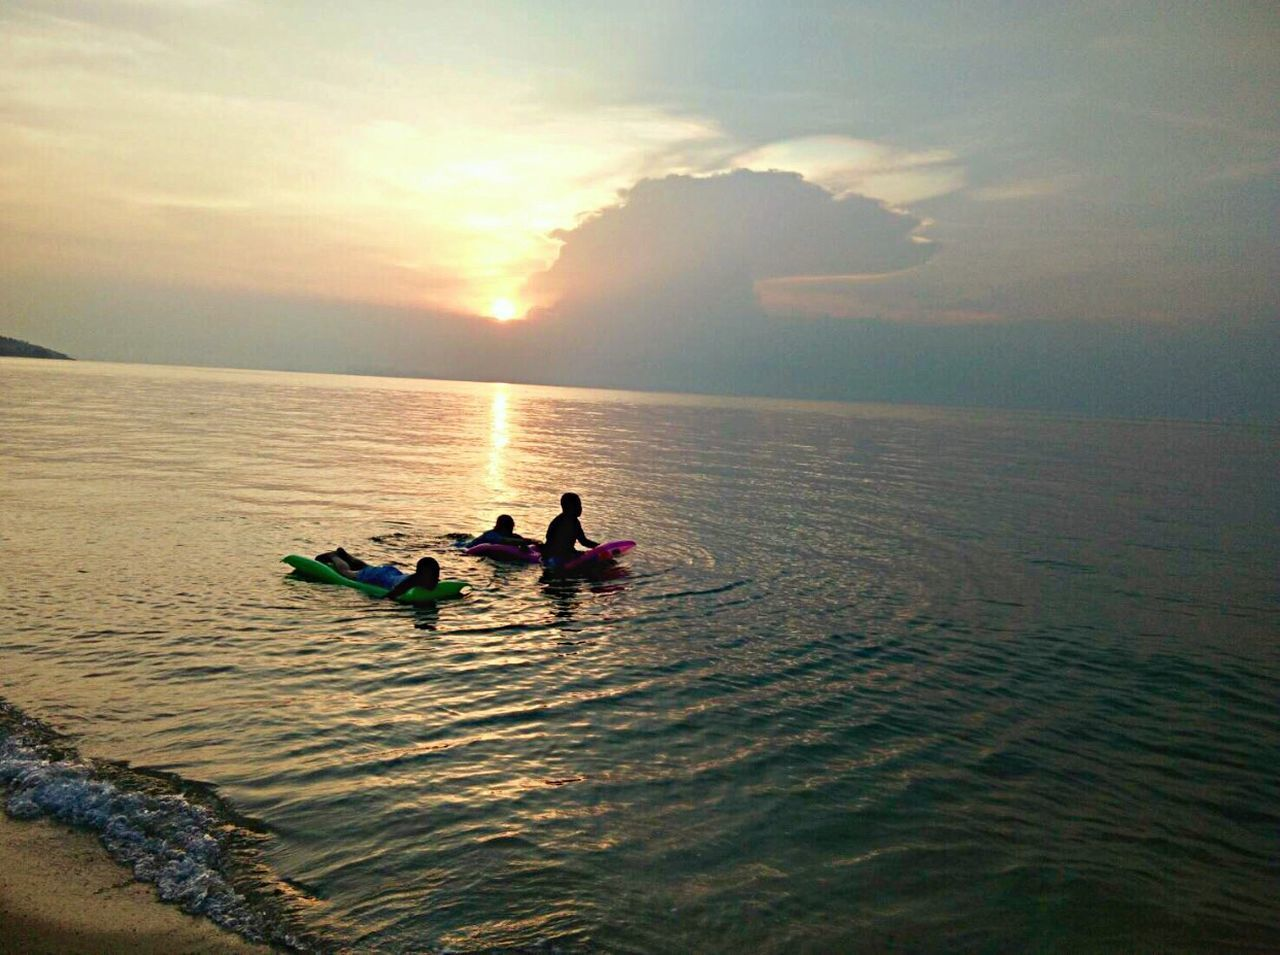 water, real people, sea, nature, scenics, beauty in nature, waterfront, sunset, transportation, leisure activity, adventure, nautical vessel, outdoors, sky, lifestyles, horizon over water, men, togetherness, vacations, jet boat, day, people